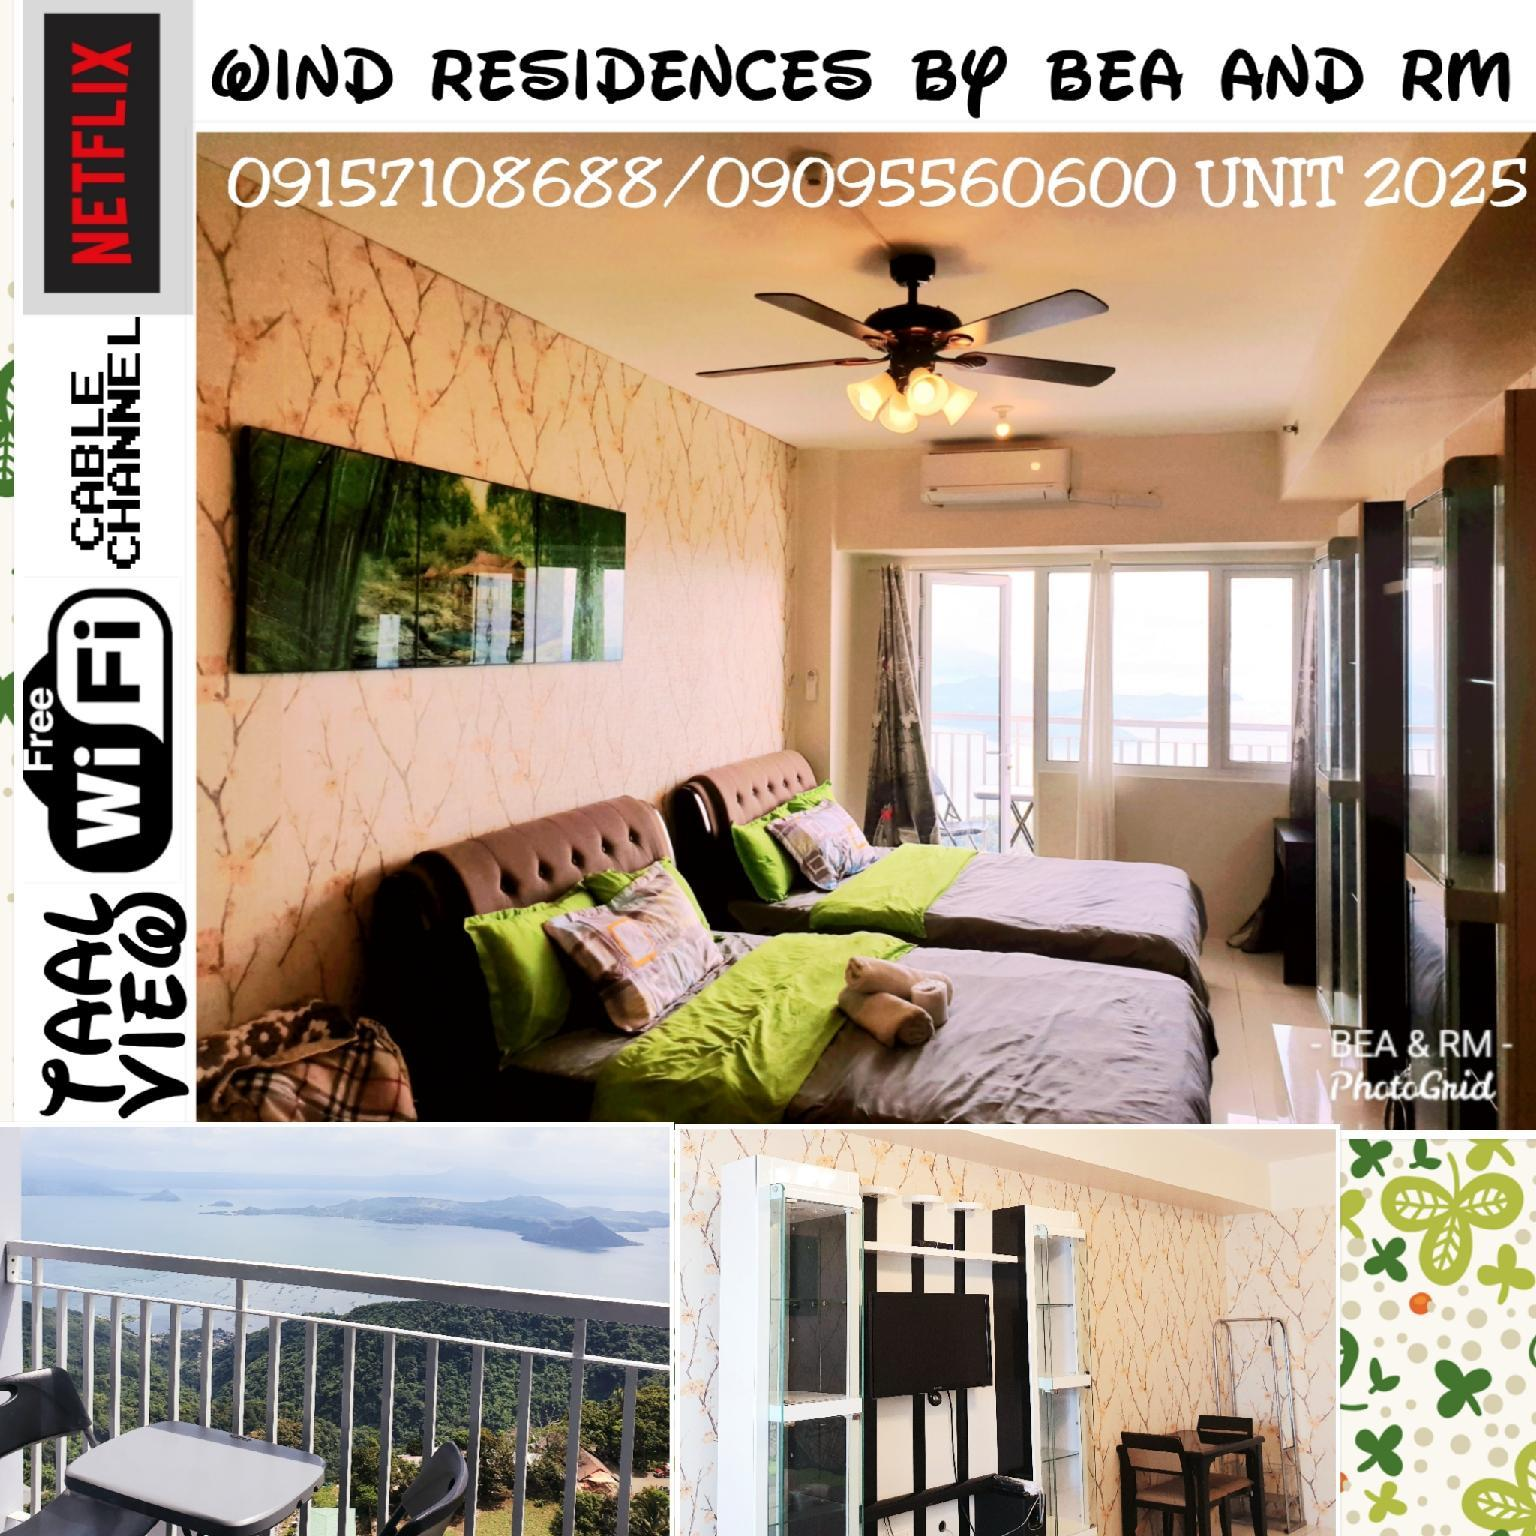 TAAL VIEW FAMILY STUDIO NETFLIX WIFI CABLE CANCOOK